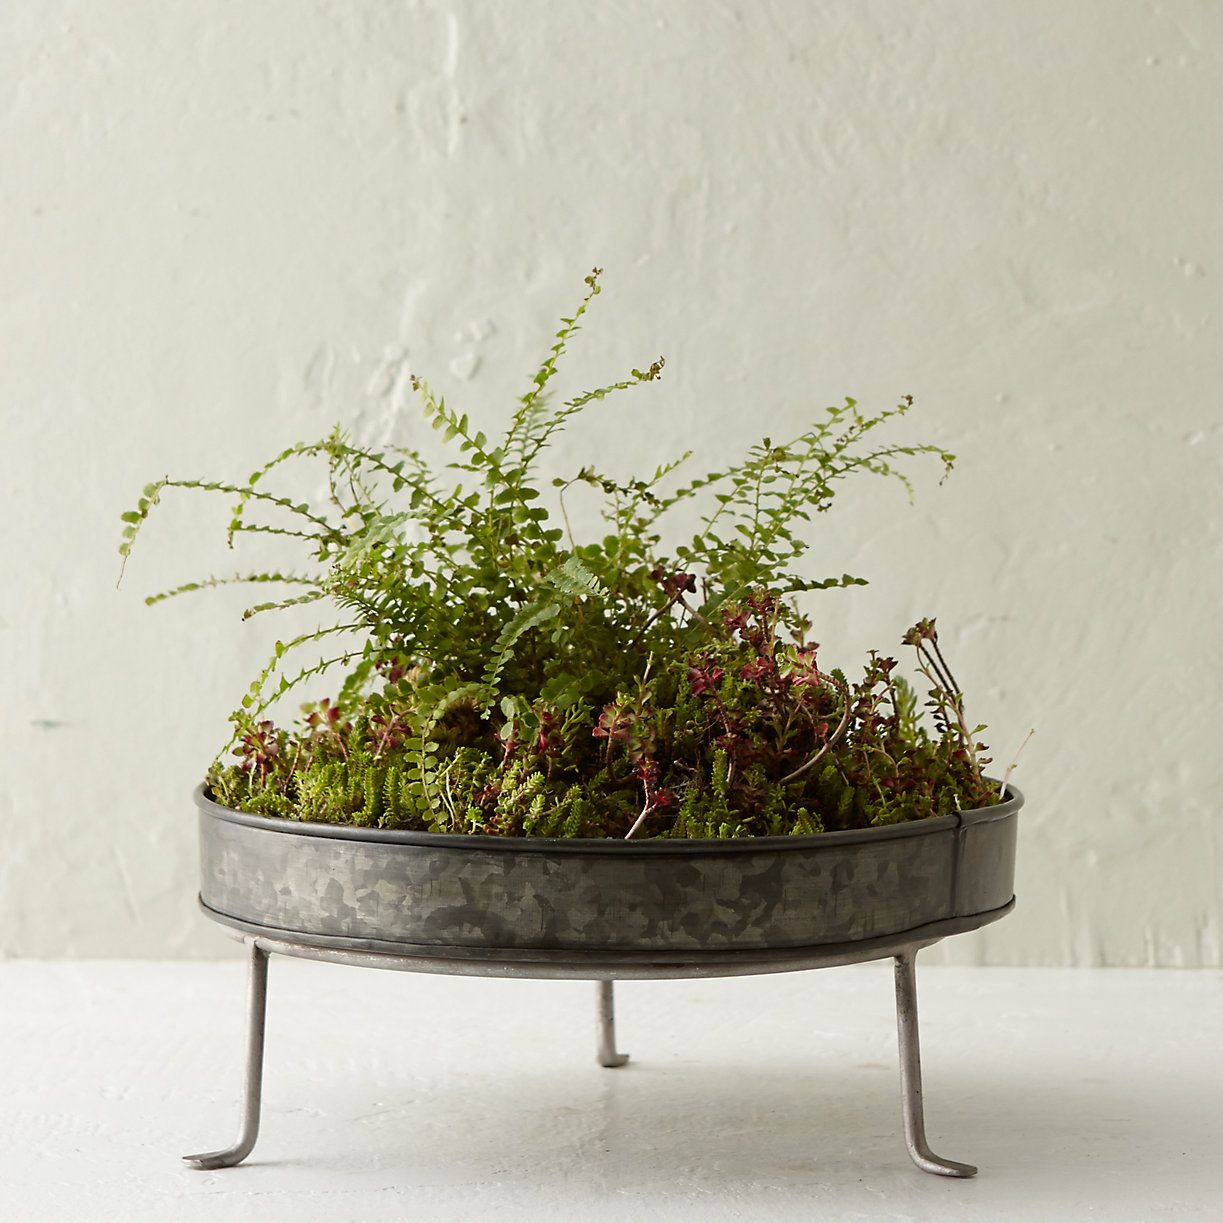 Silver Footed Low Plant Stand 5 12 In Garden Stands At Terrain